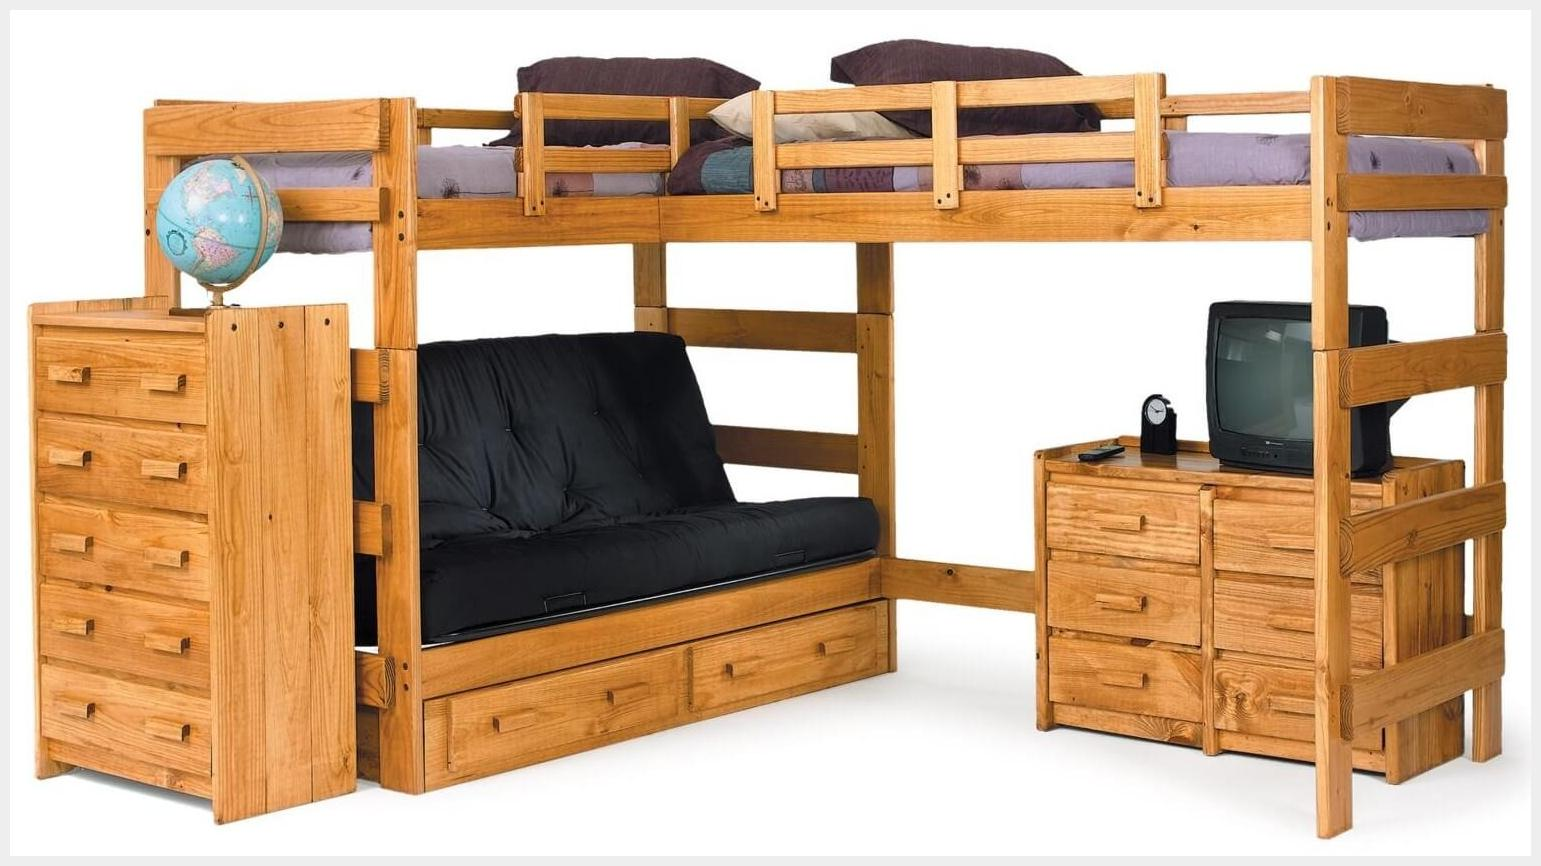 Astonishing L Shaped Bunk Beds Designs With Pictures Decor Or Design